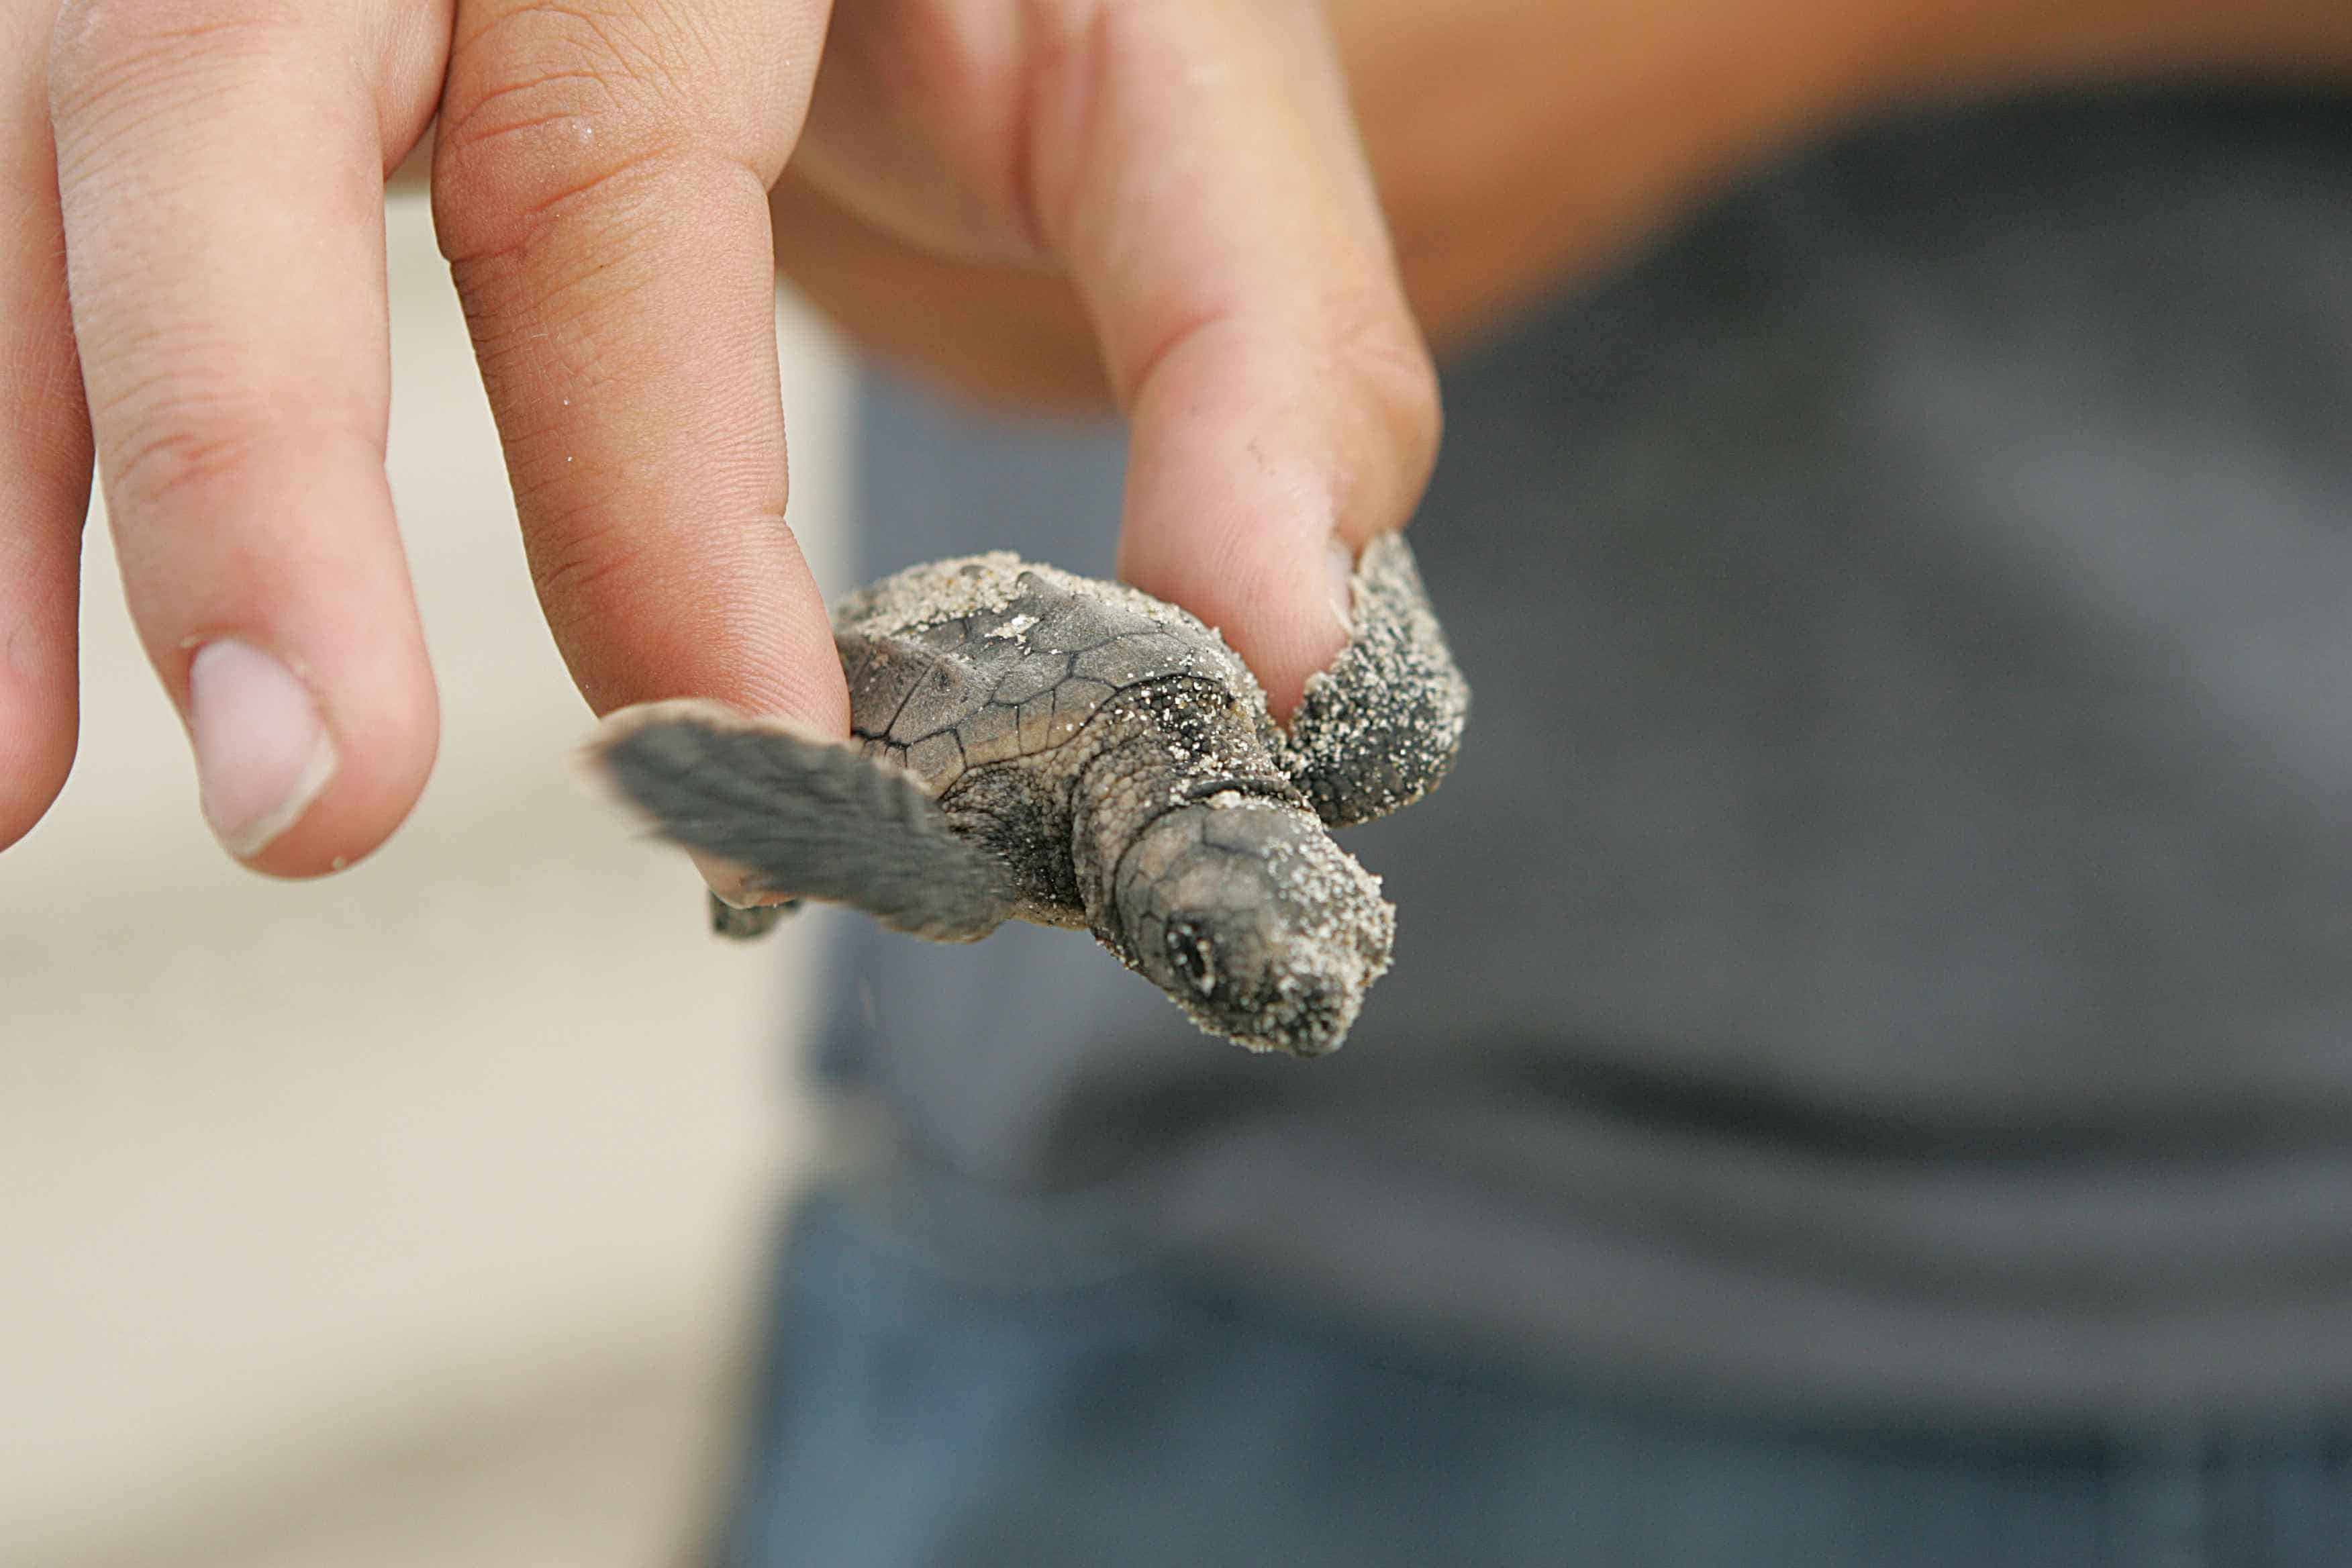 Holding Sea Turtles - Worlds cruelest tourist attractions